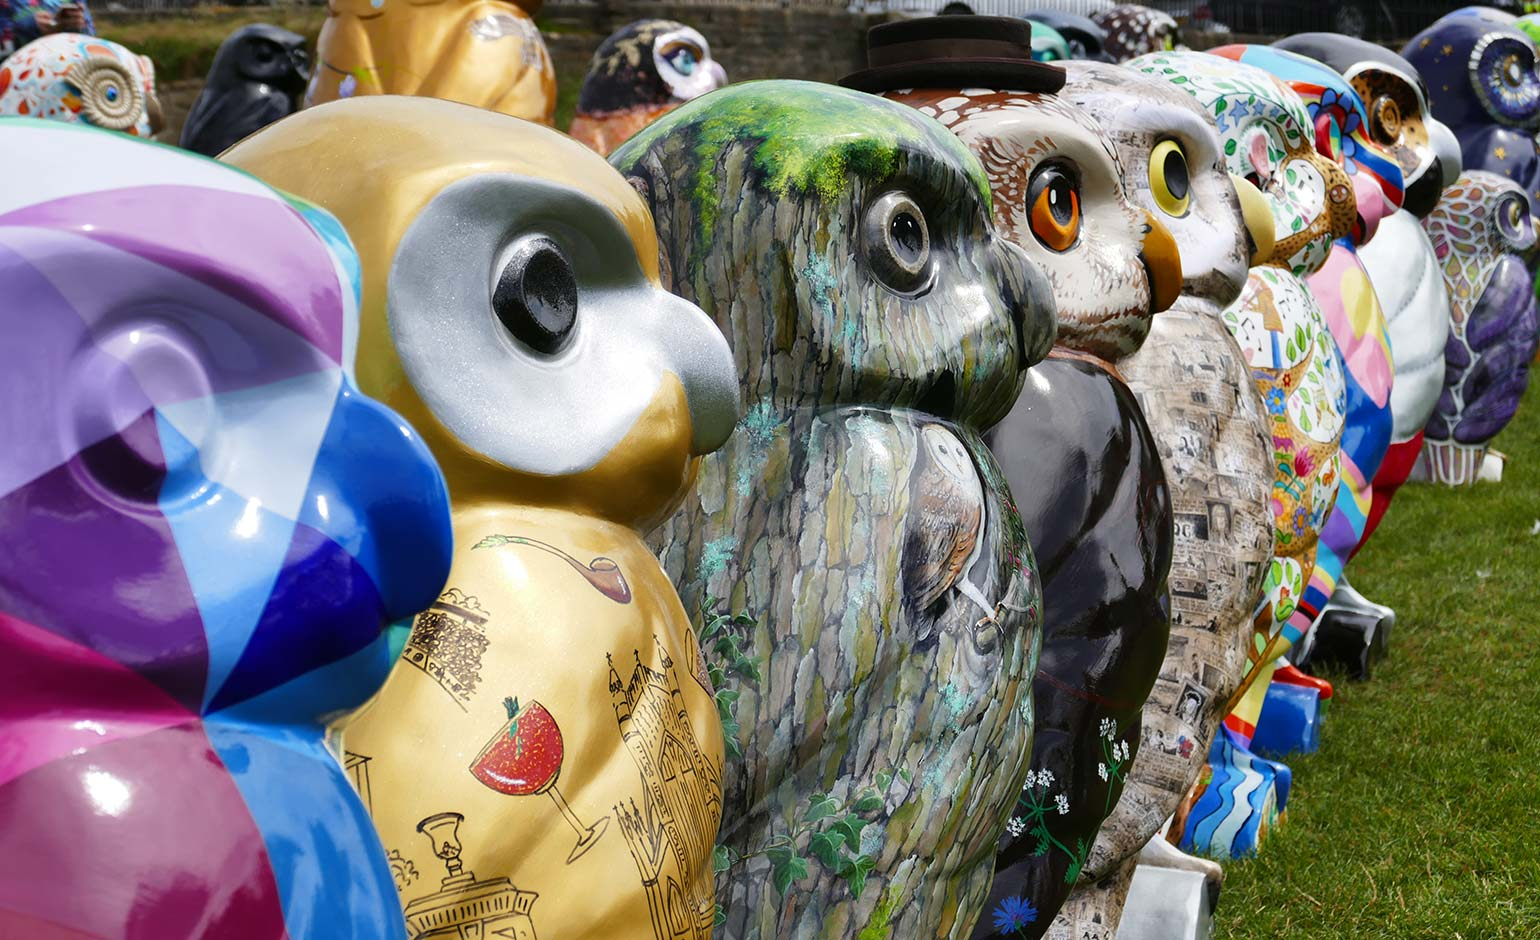 Minerva's Owls of Bath sculptures set to be auctioned for local charities